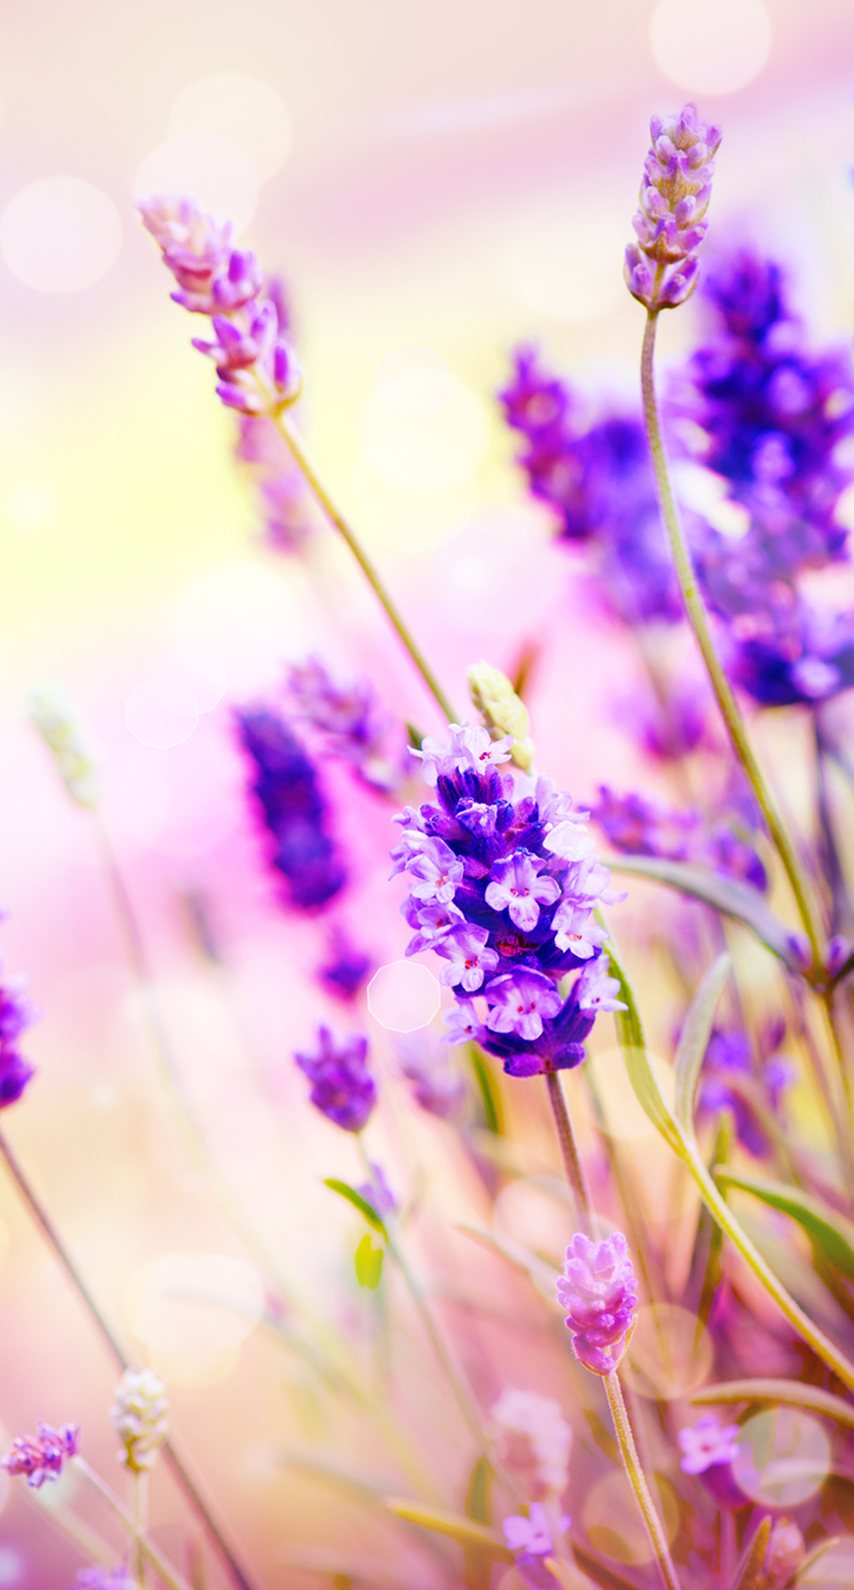 flora, garden, blooming, dof, perfume, lavender color, lilac, herbal, aromatic, aromatherapy, cluster